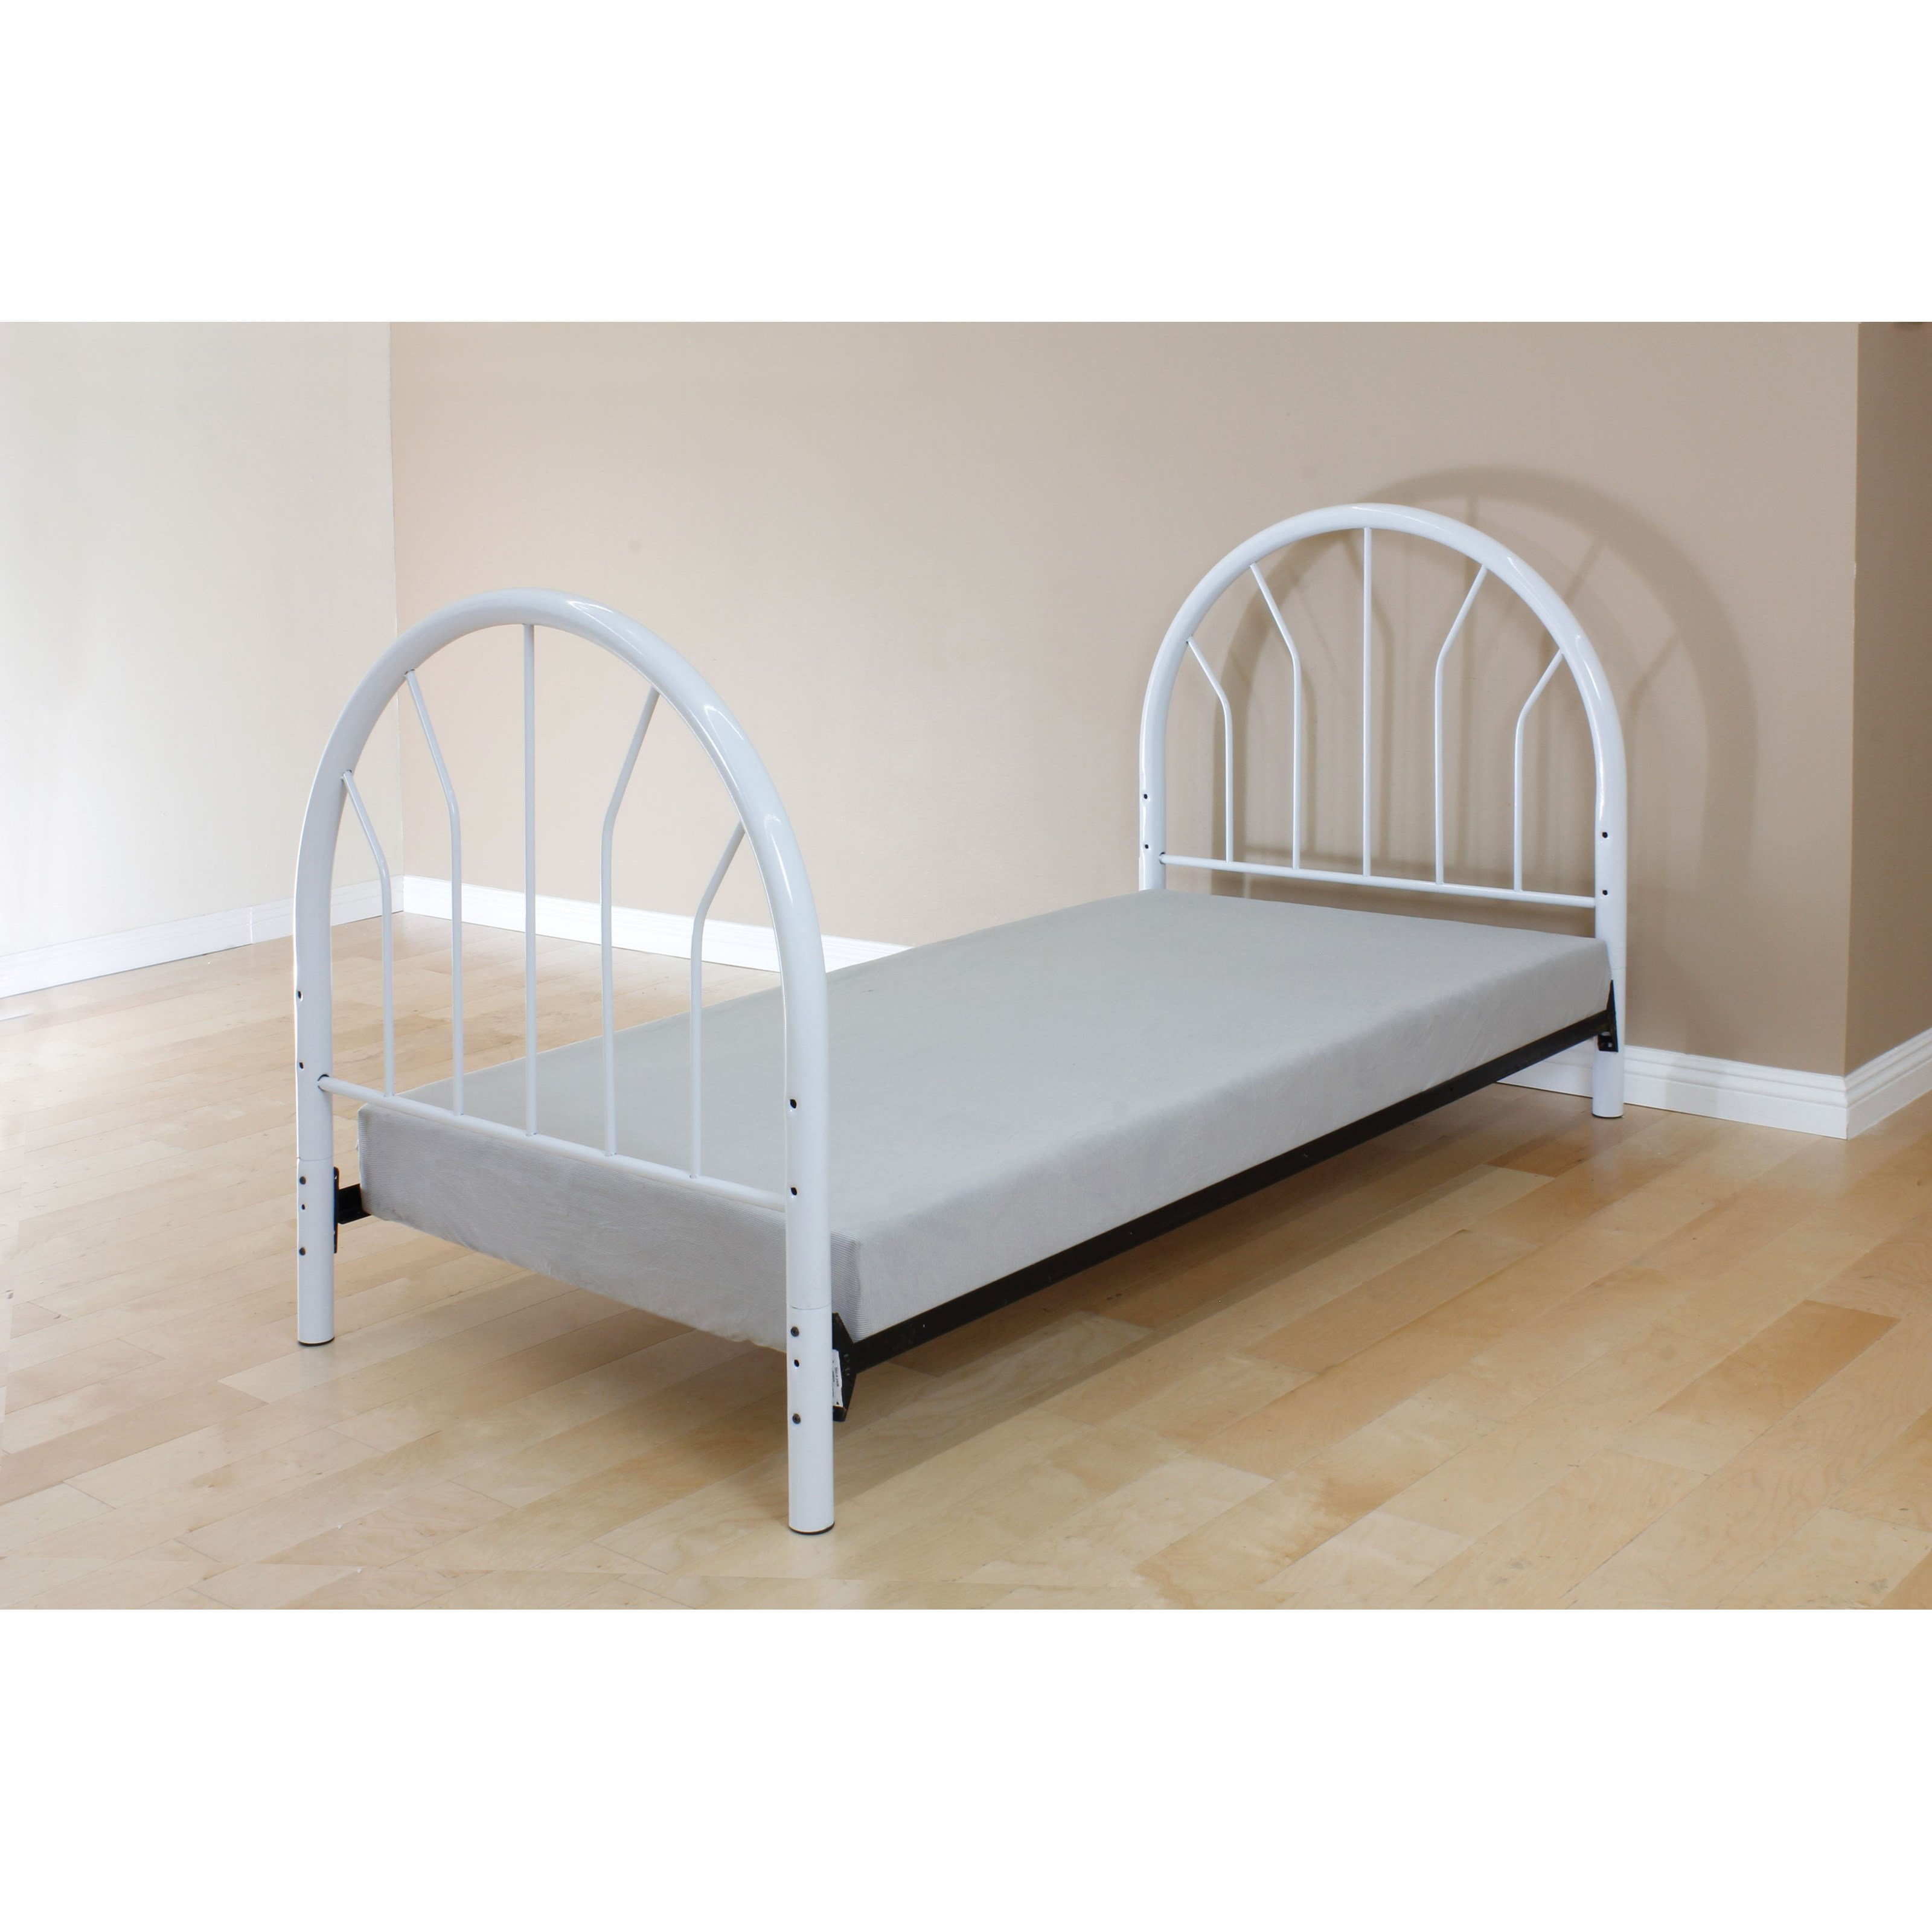 Silhouette Twin Bed (Headboard/Footboard Only) by Acme Furniture at Del Sol Furniture